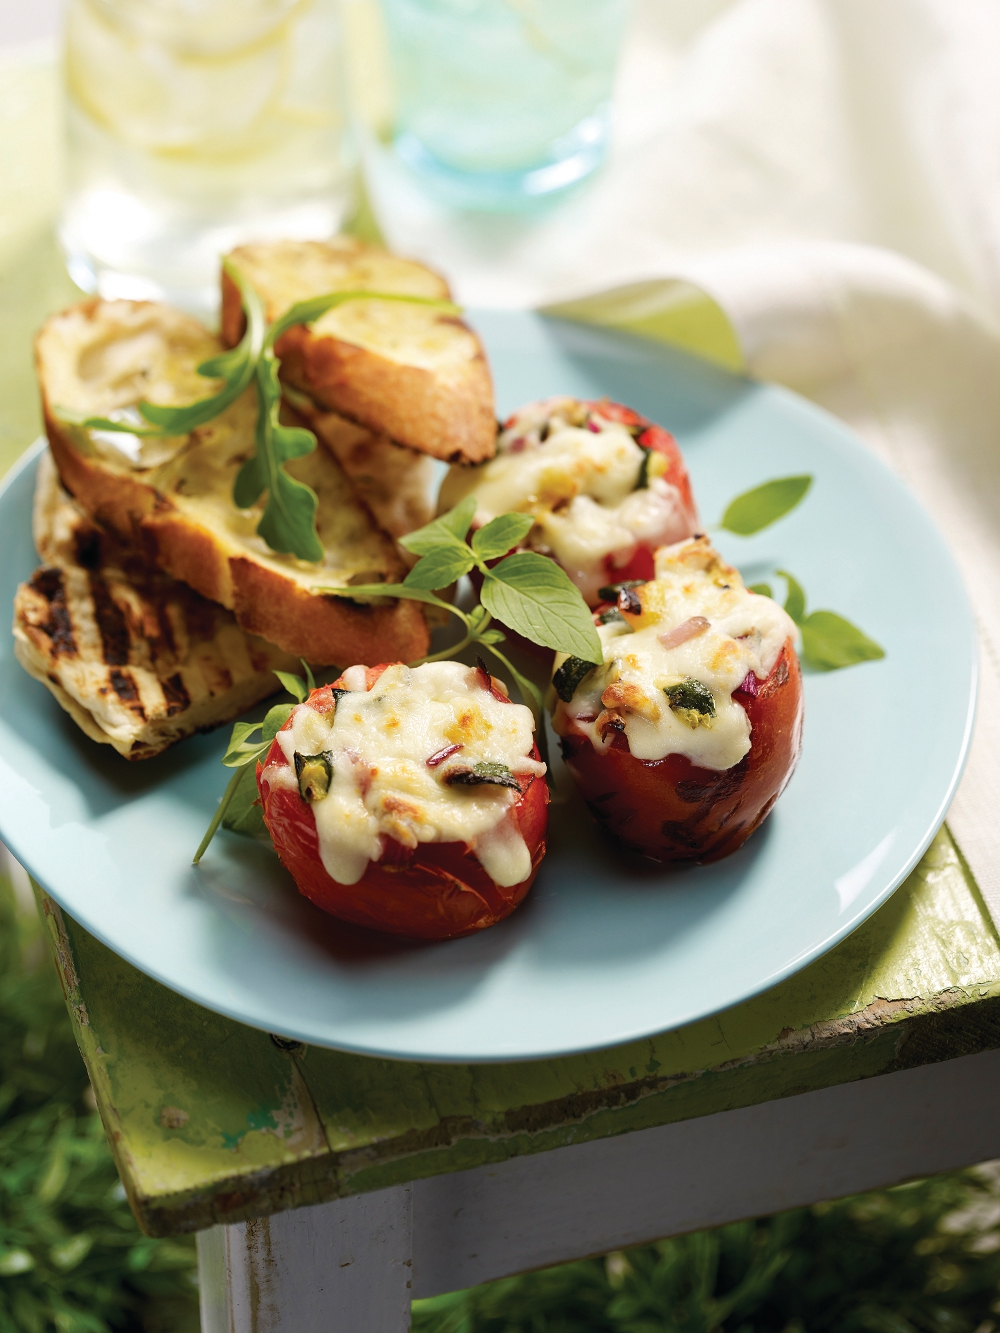 Mozzarellissima Grilled Stuffed Tomatoes